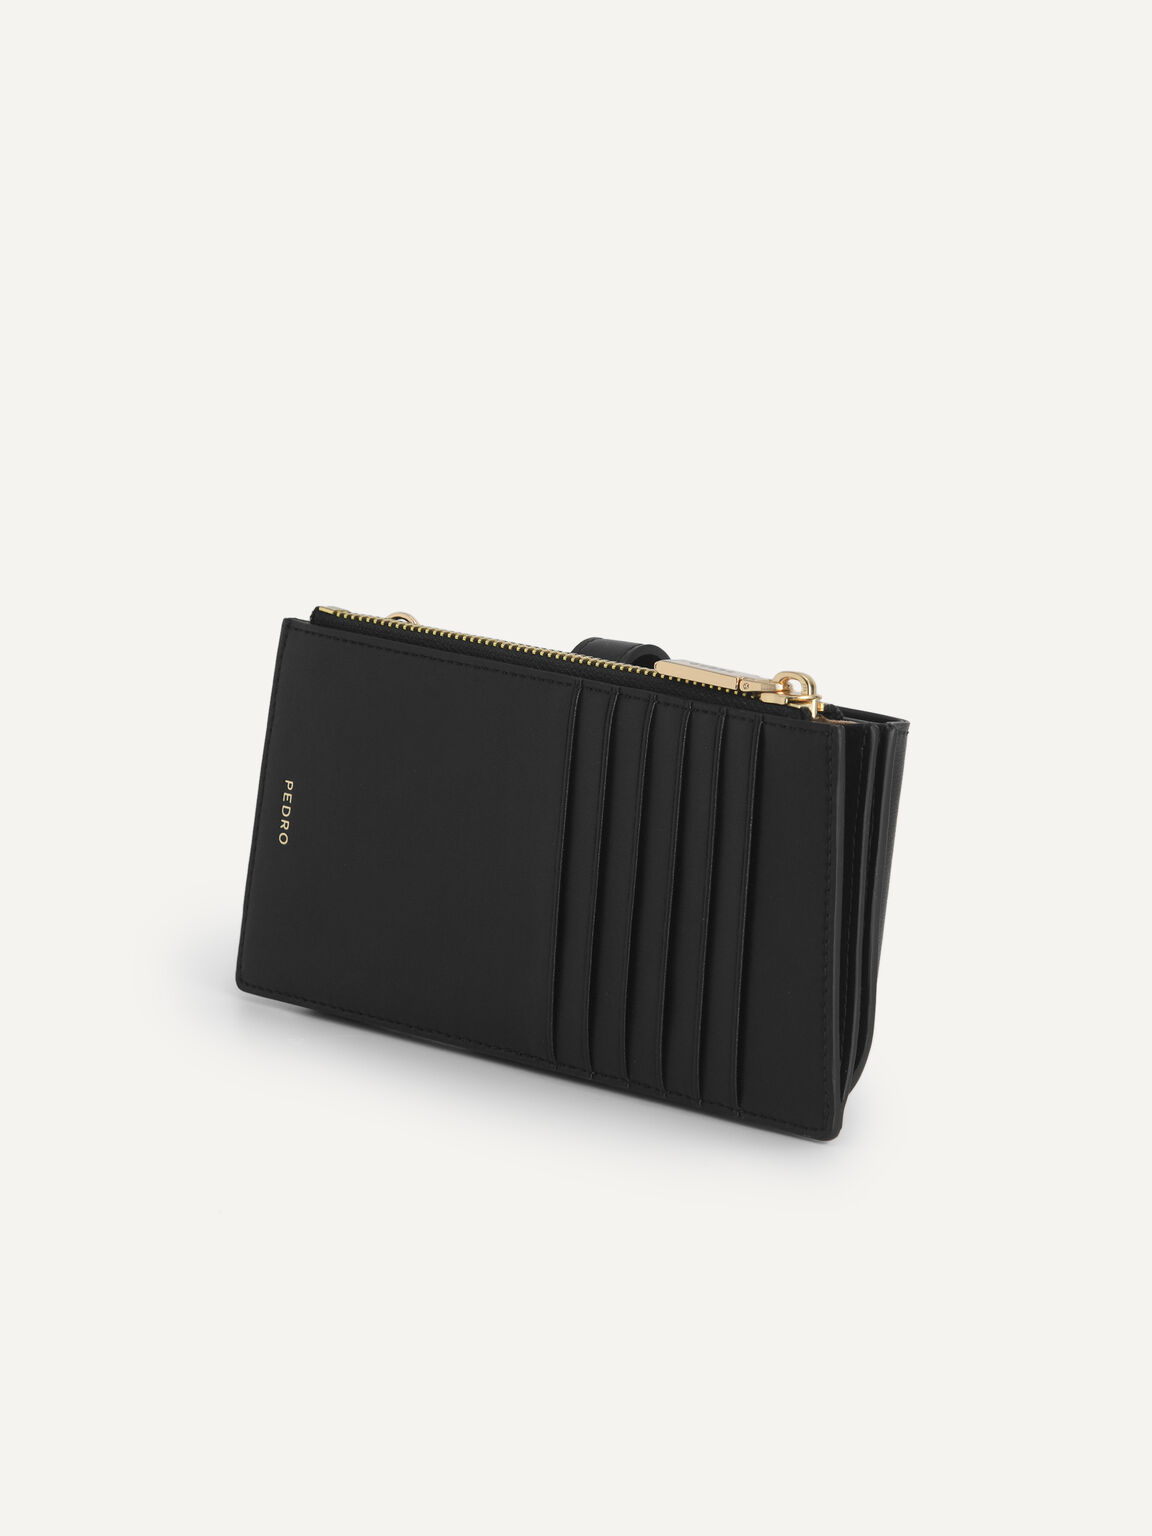 Textured Leather Phone Pouch, Black, hi-res